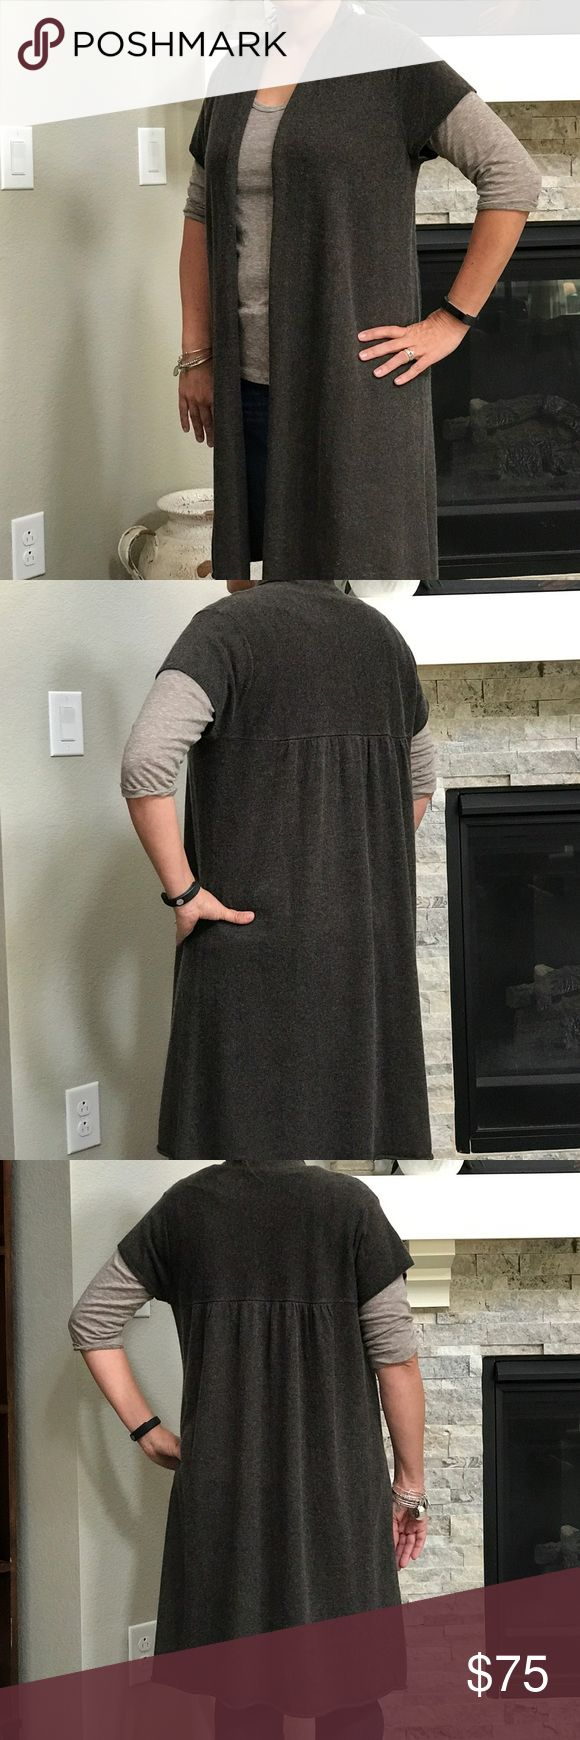 🔥Eileen Fisher🔥Silk and Cashmere Long Cardigan This is an EILEEN FISHER ❤❤🔥SPECIAL SILK AND CASHMERE HEATHER BROWN CARDIGAN. ❤❤❤ Firm Price and this was Originally $375!!!! Eileen Fisher Sweaters Cardigans